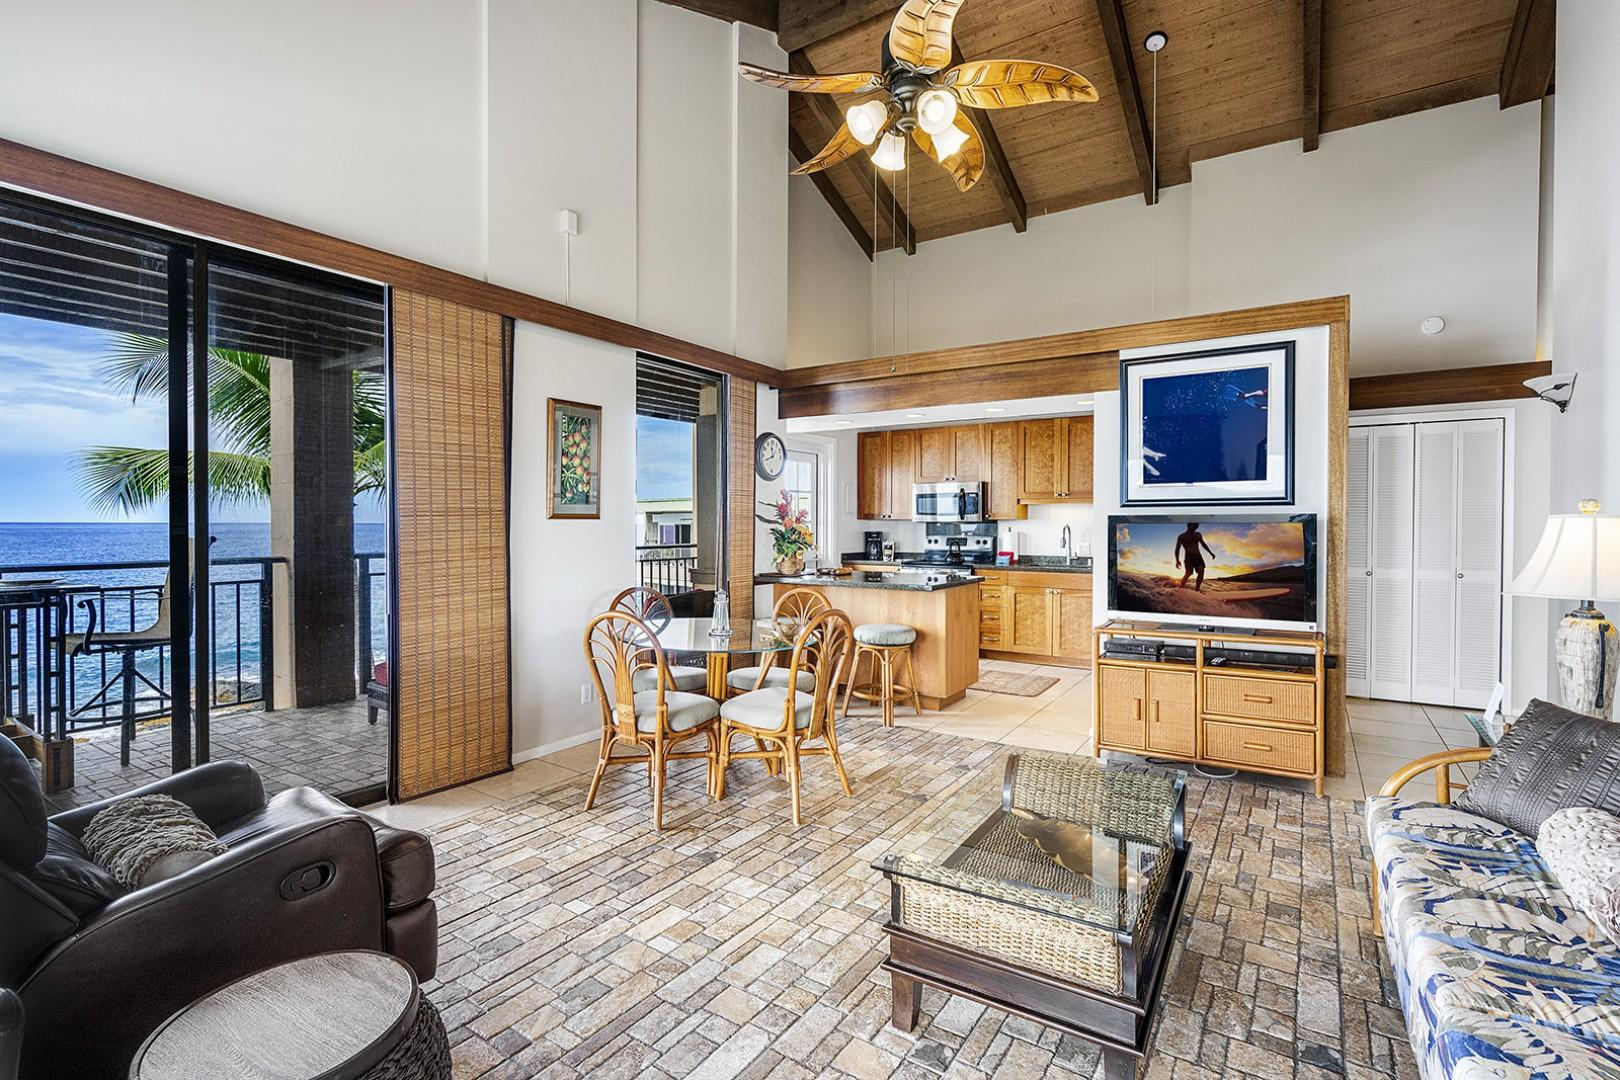 Open floor plan with vaulted ceiling allows the Ocean breeze to move freely